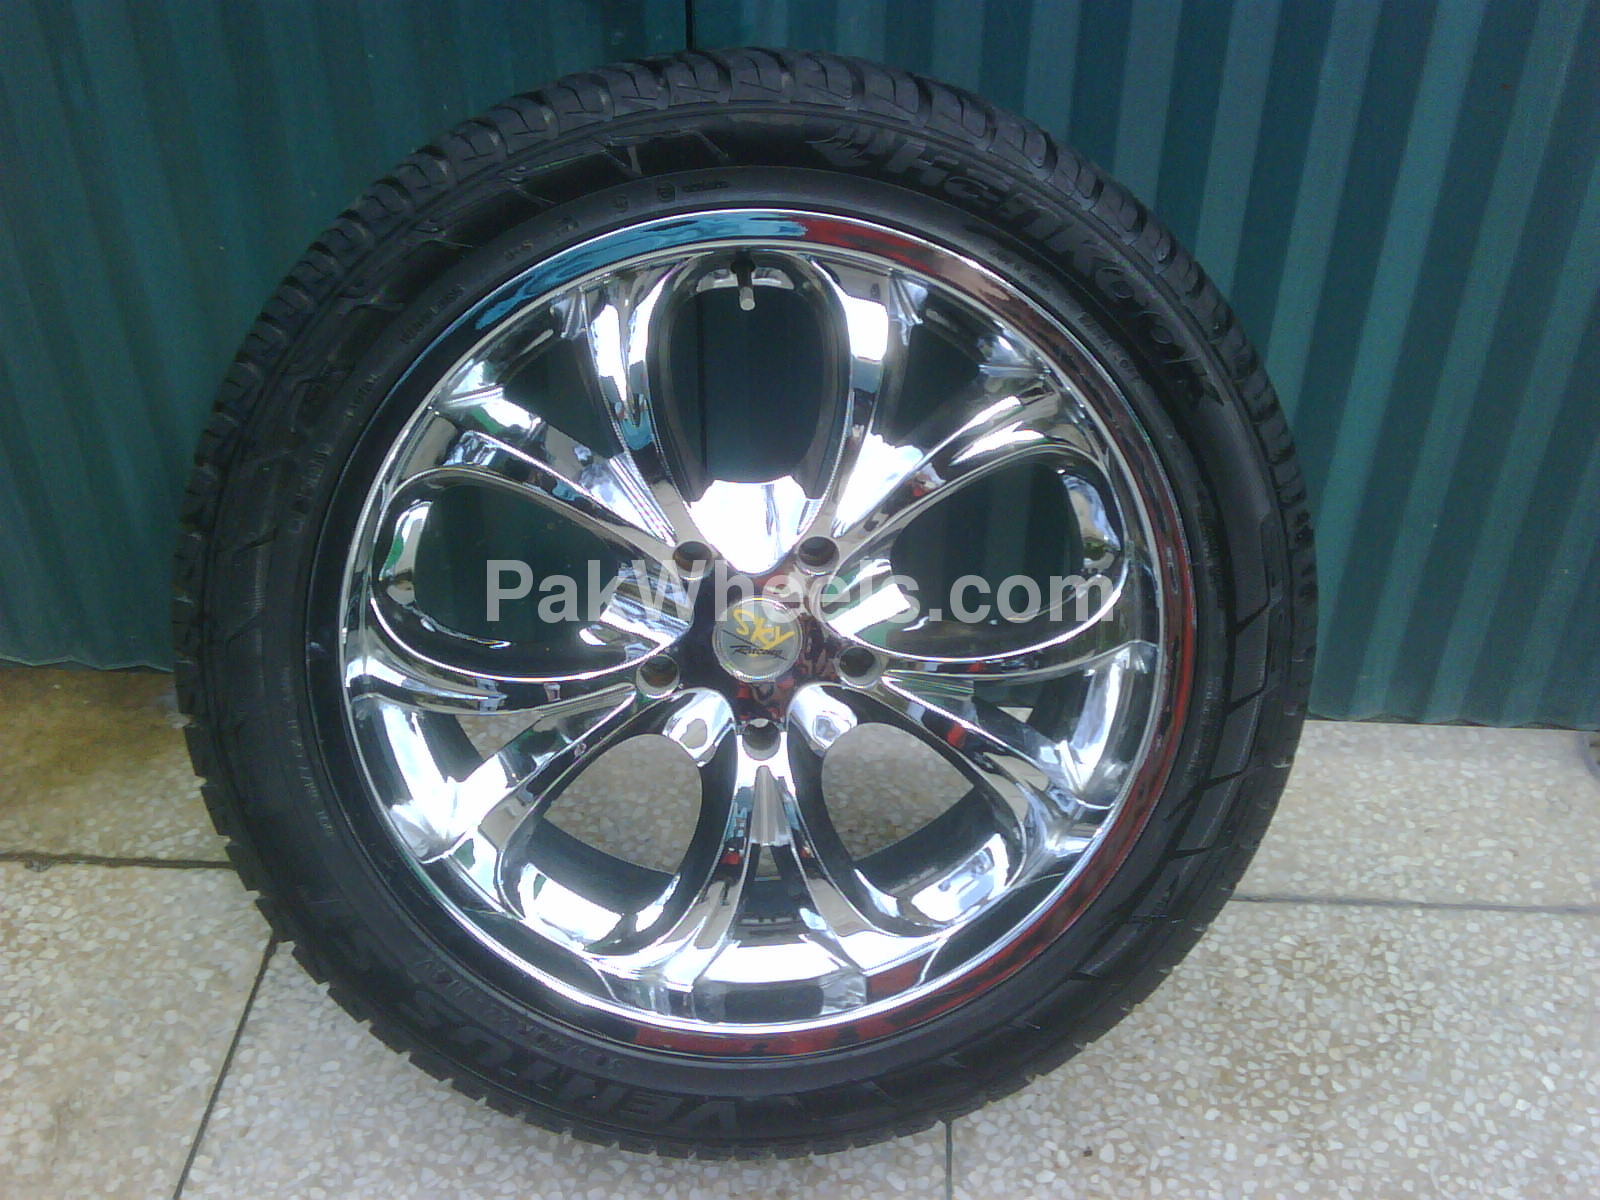 Pin 22 inch rims for sale image search results on pinterest